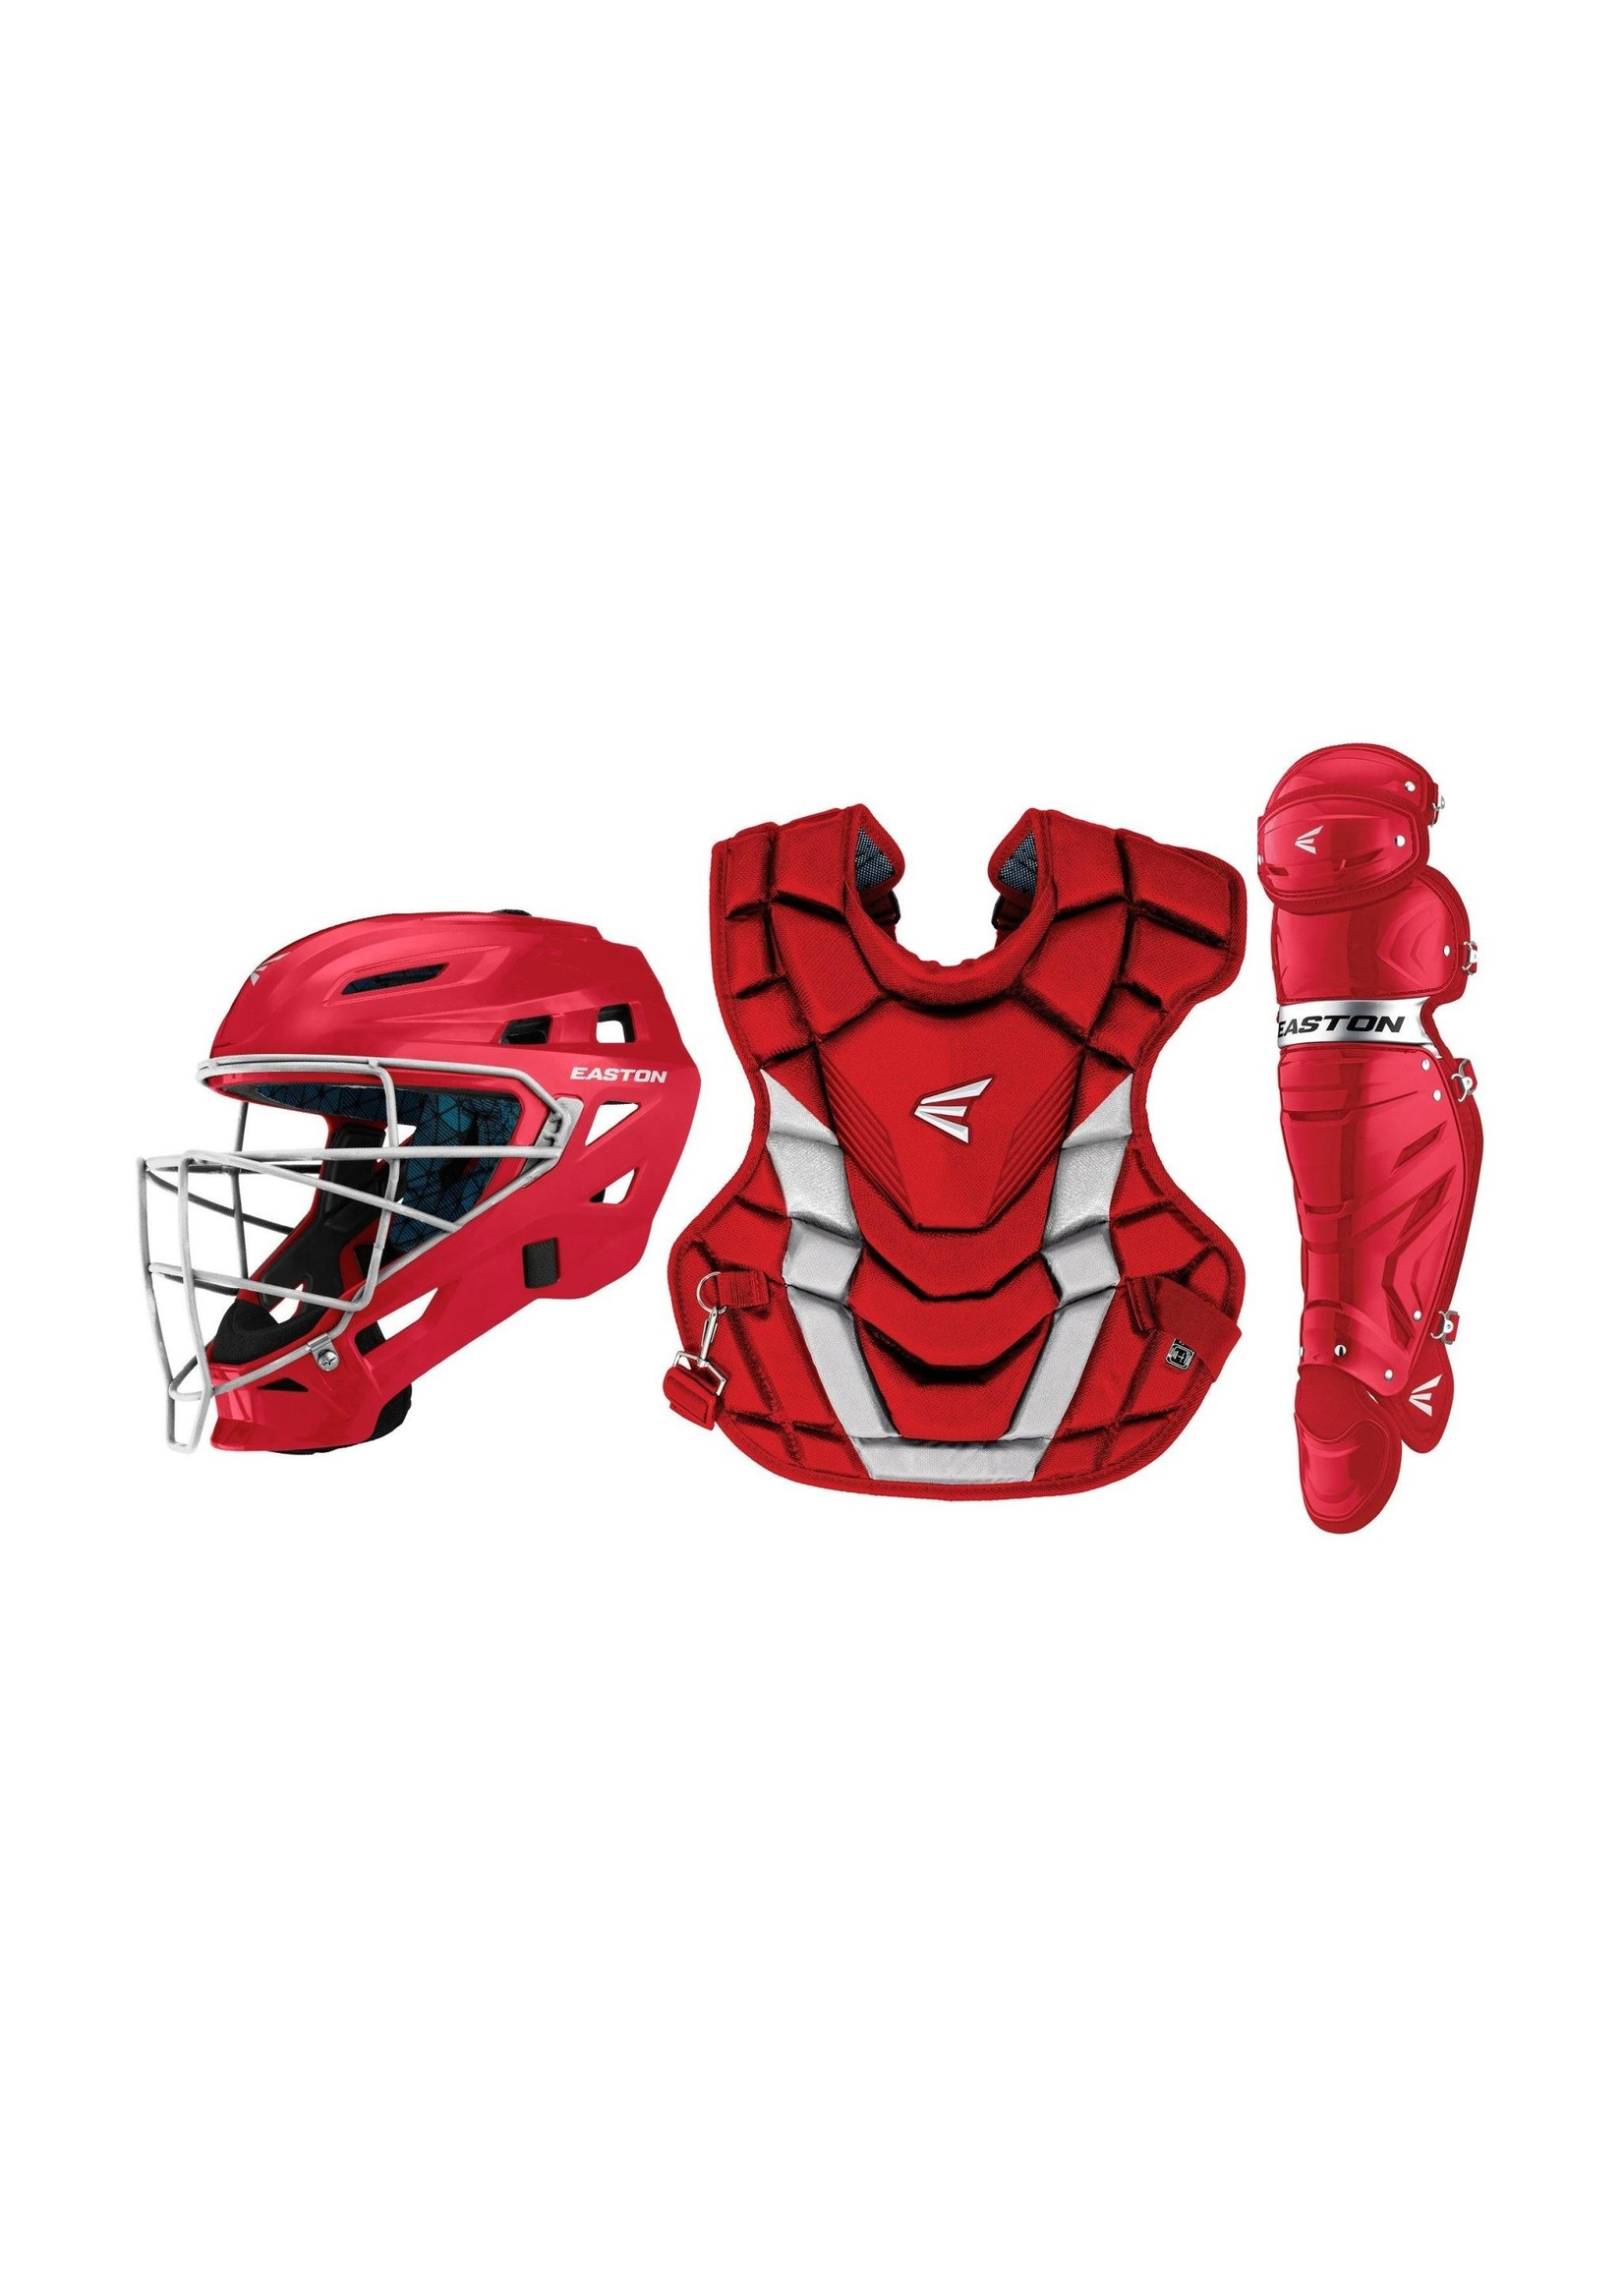 Easton Baseball (Canada) EASTON GAMETIME KIT DE RECEVEUR INTERMÉDIAIRE